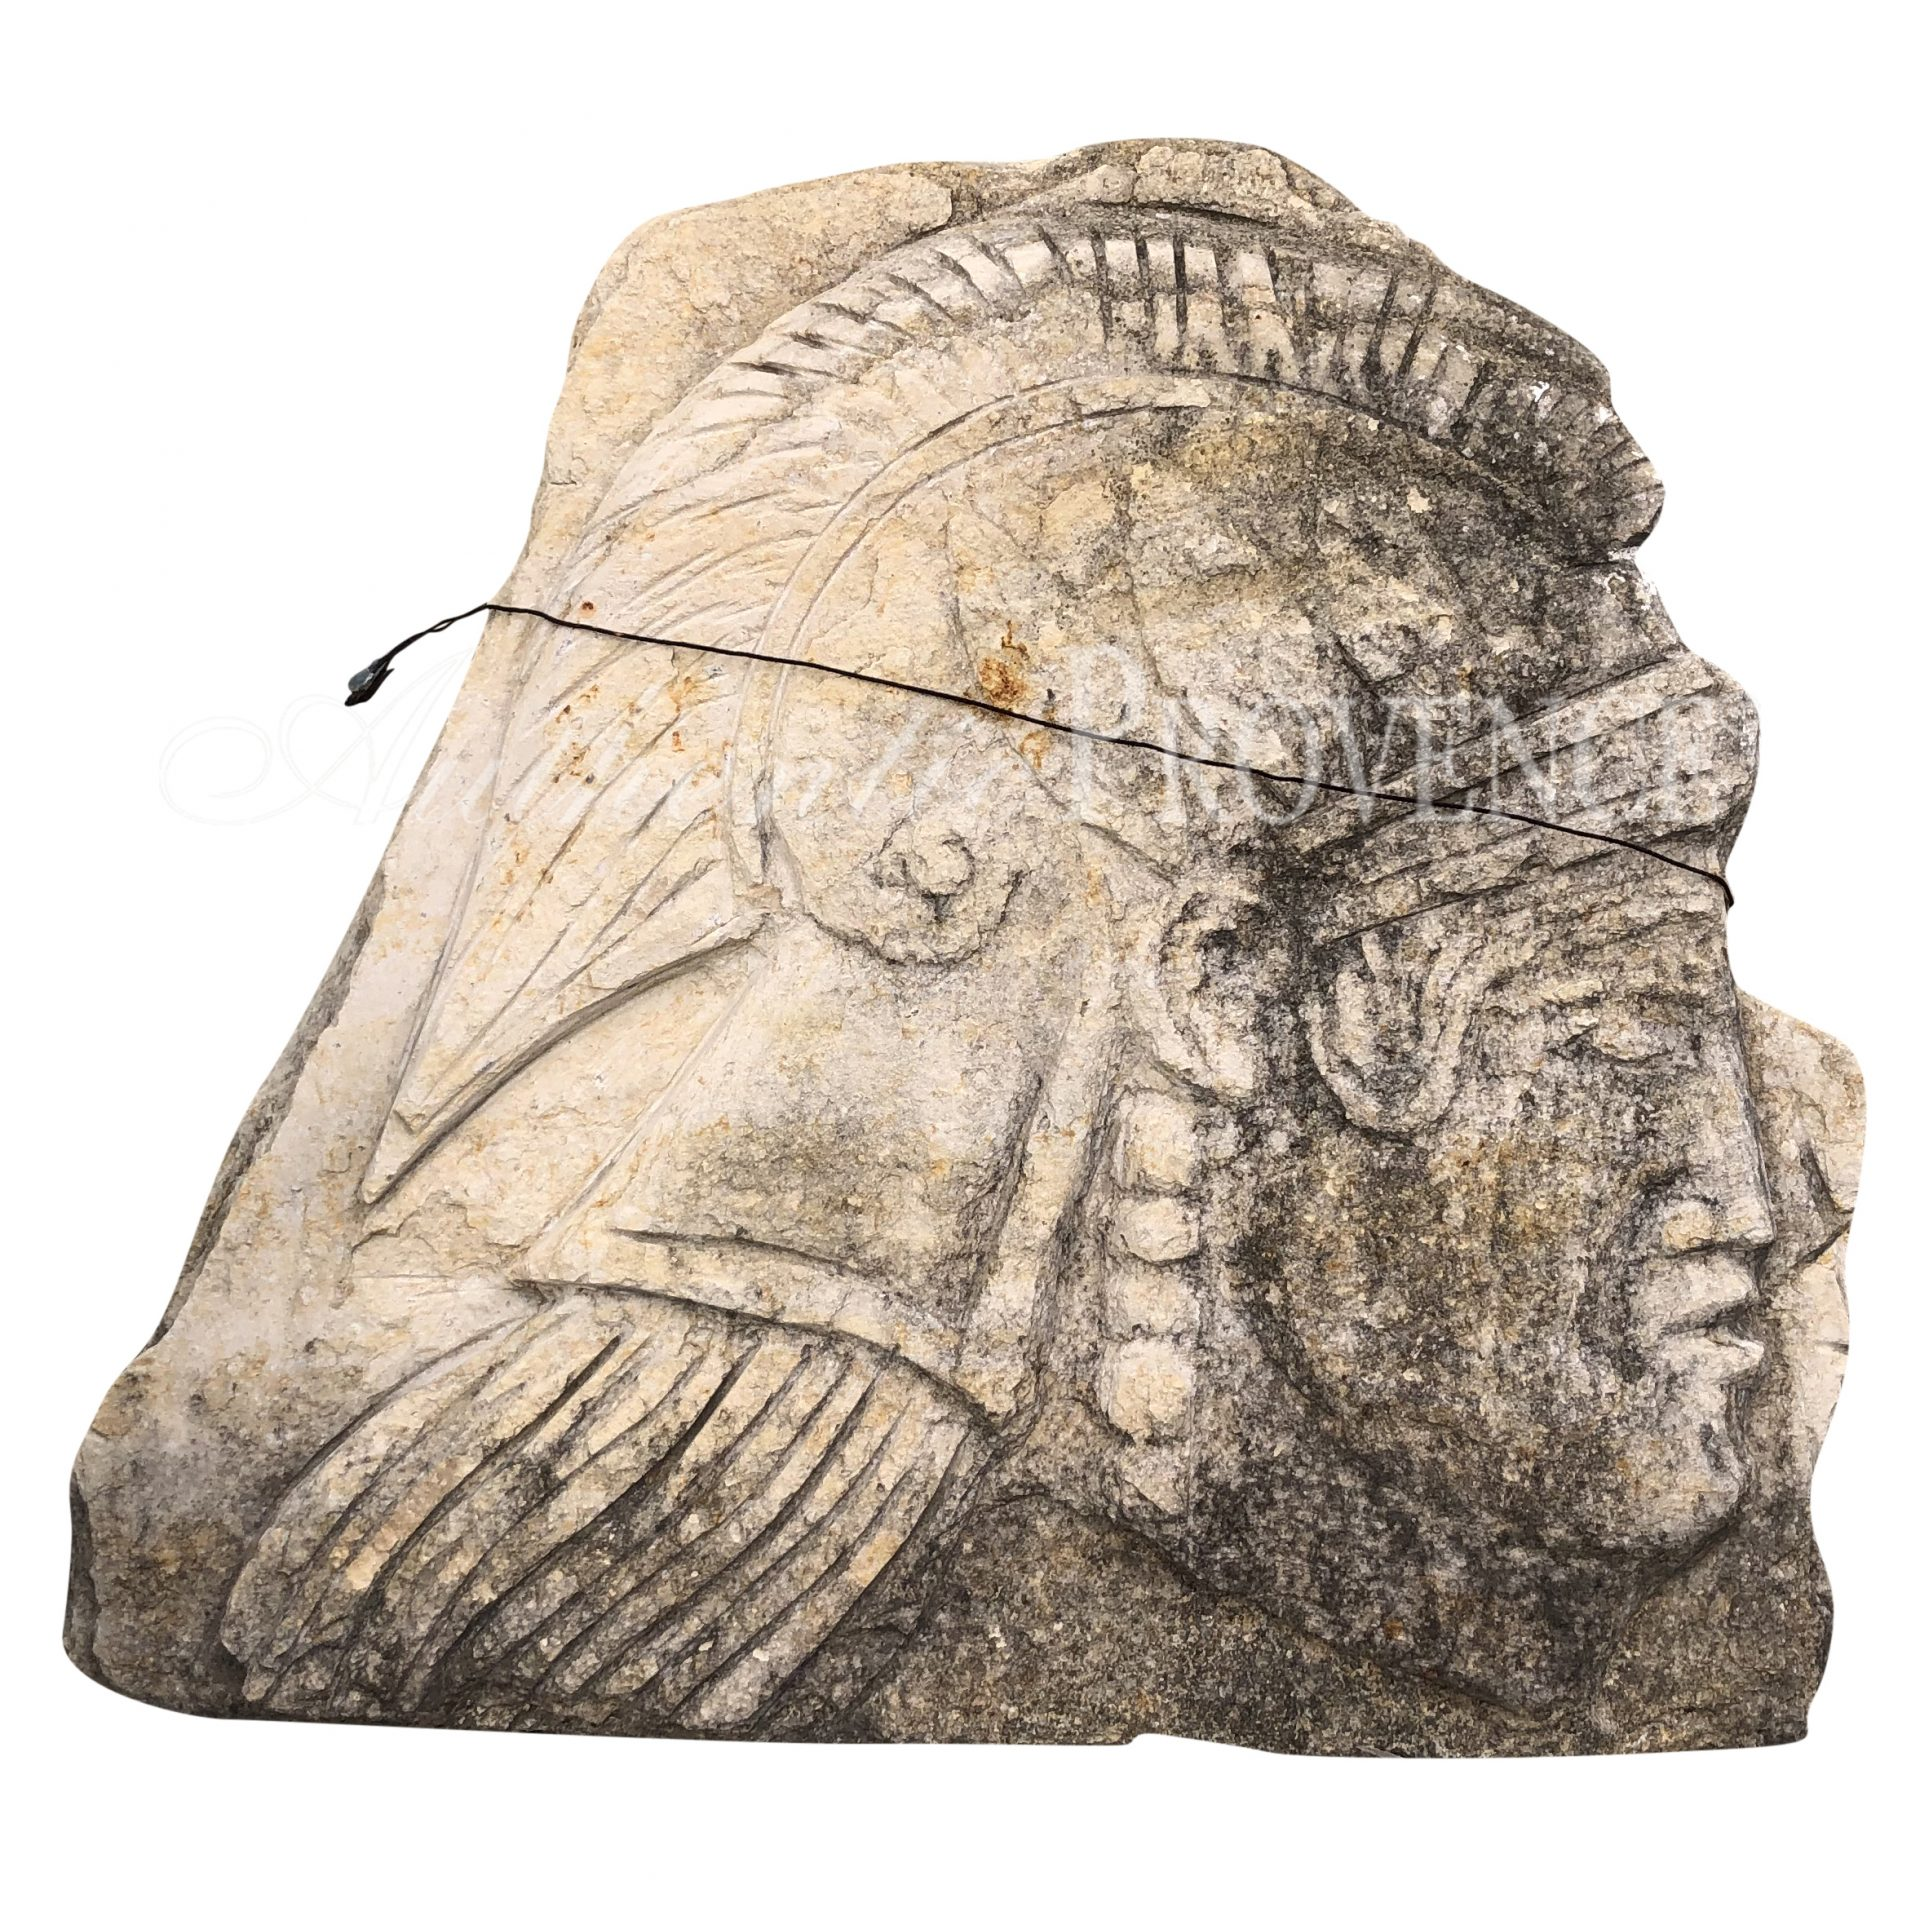 Byzantine Warrior Relief